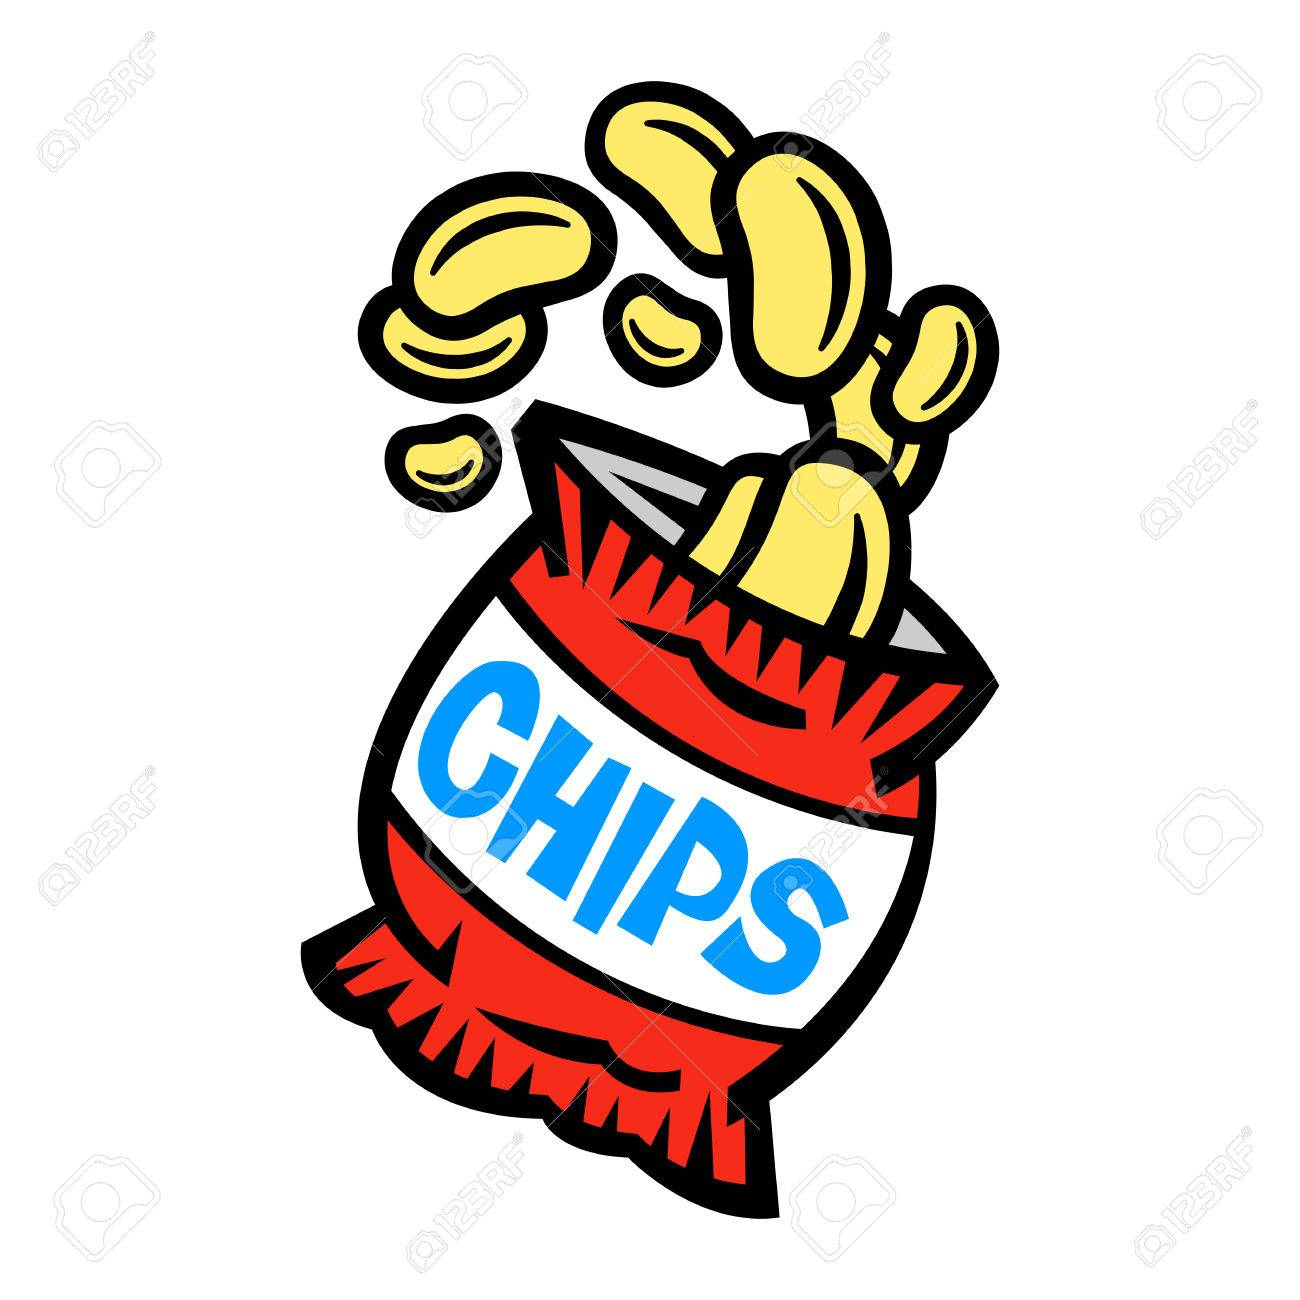 Bag of chips clipart 2 » Clipart Station.